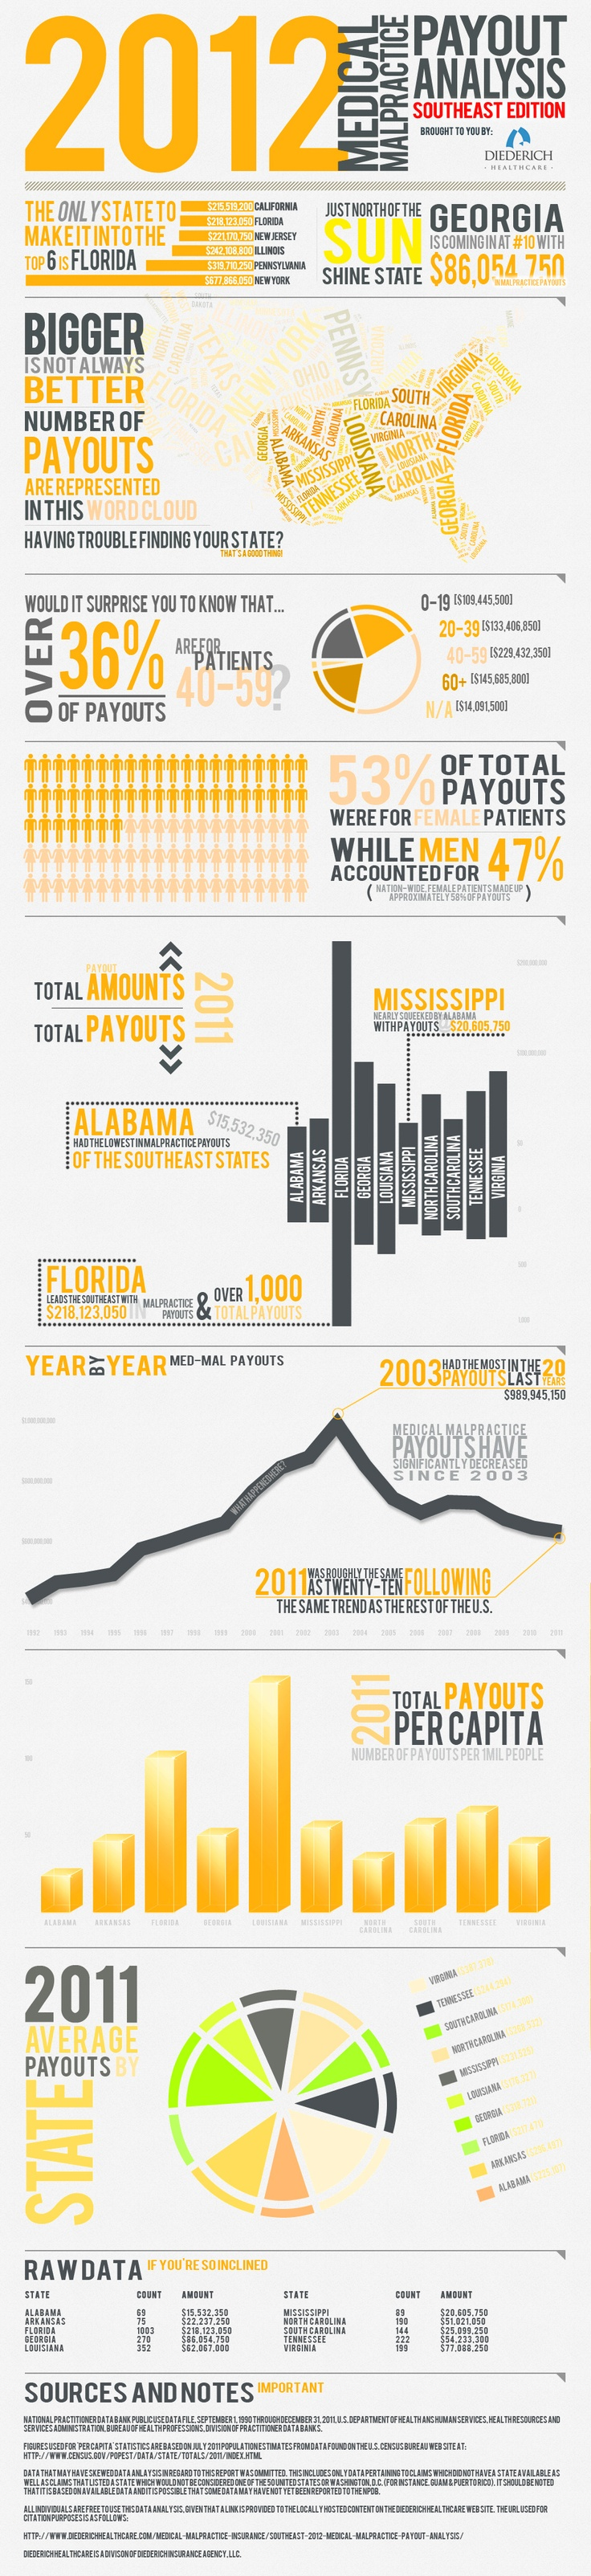 Southeast Medical Malpractice Payout Analysis - 2012